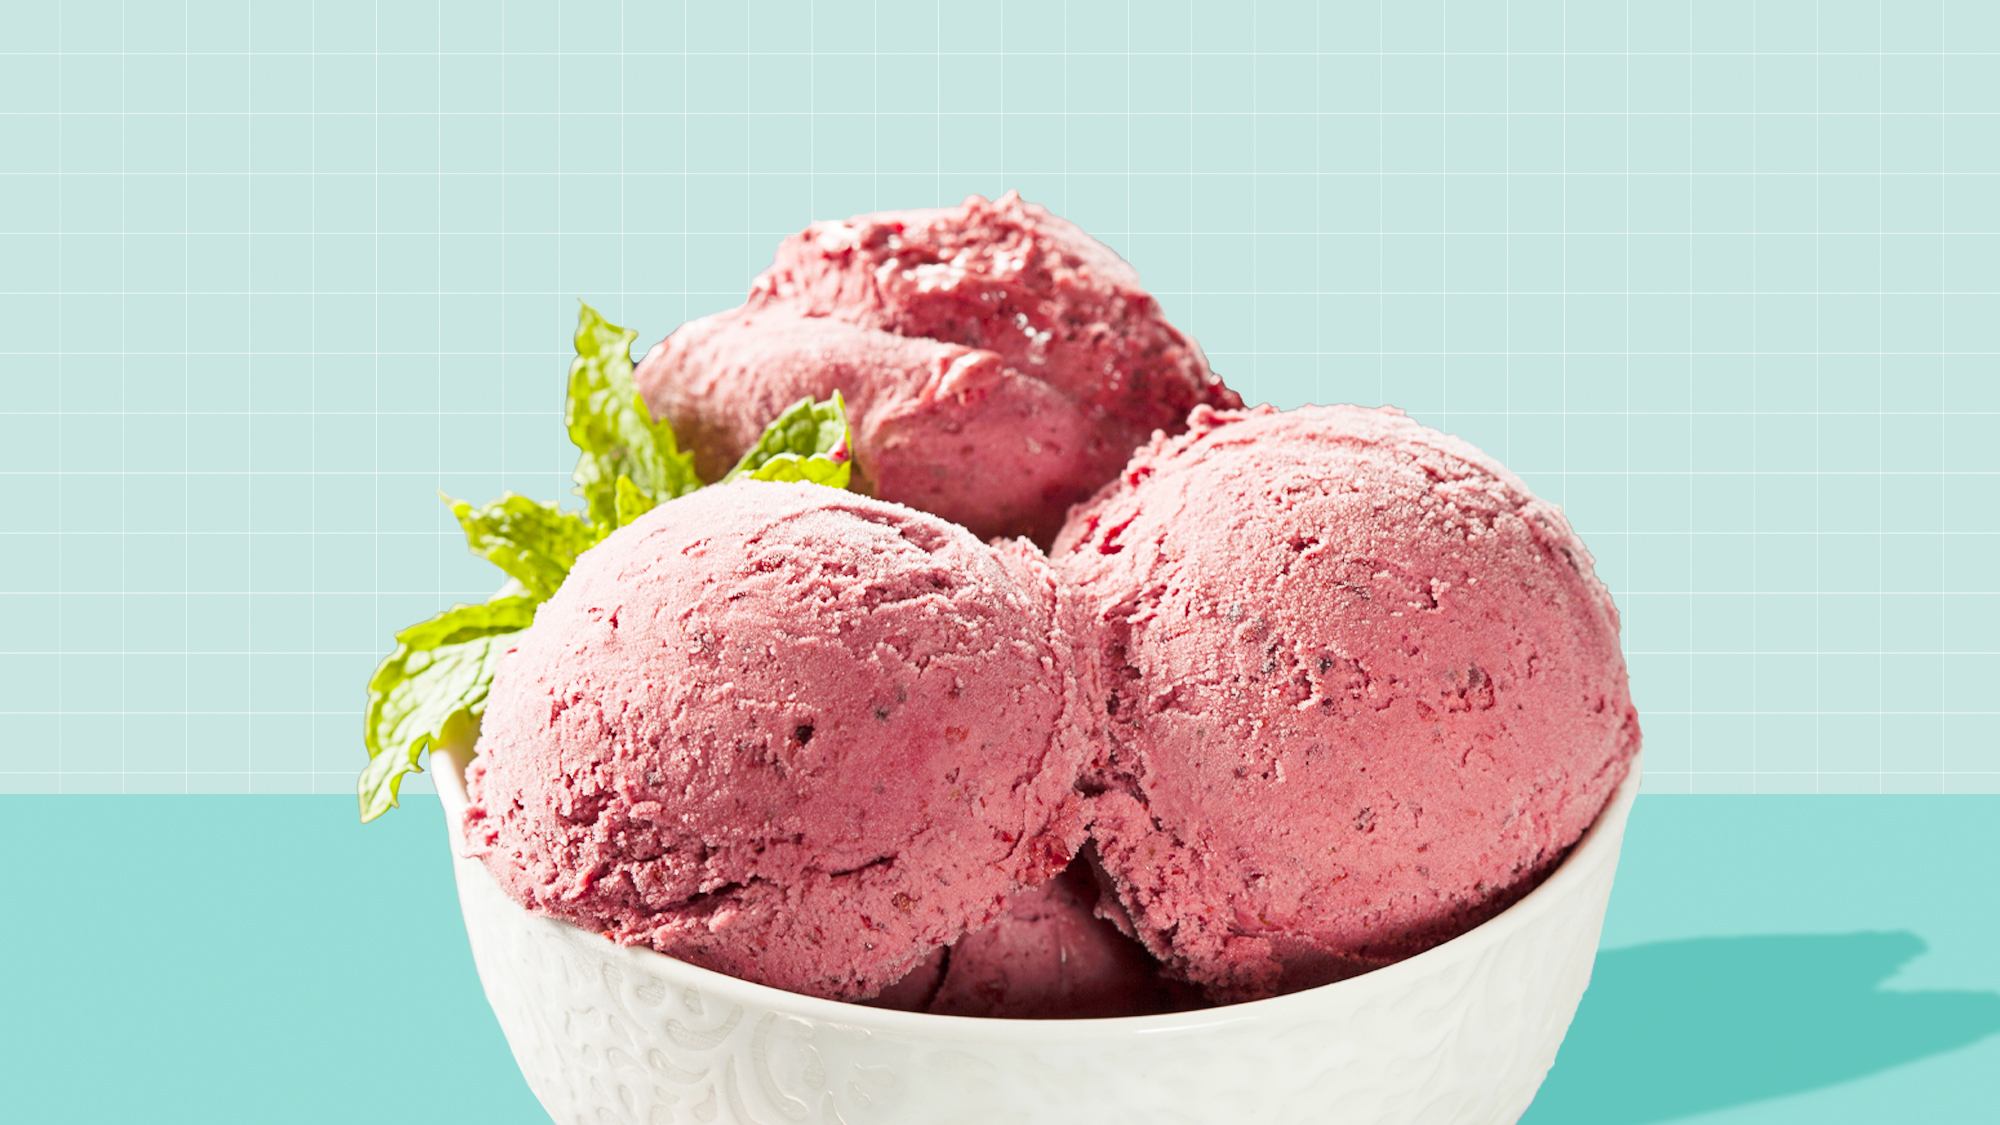 a bowel of berry sorbet on a designed background